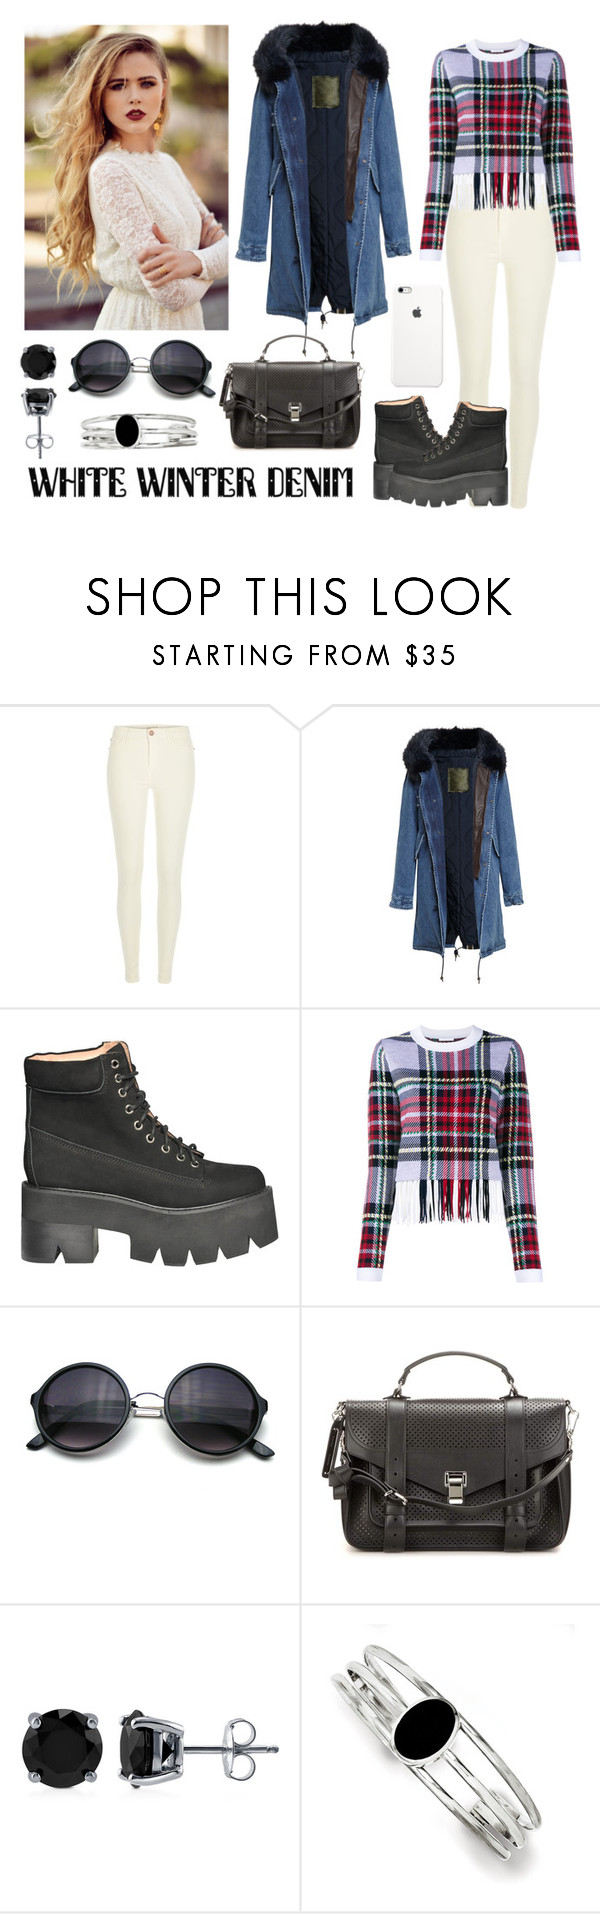 """257-> White Winter Denim"" by dimibra ❤ liked on Polyvore featuring mode, River Island, Mr & Mrs Italy, Jeffrey Campbell, Chloé, Proenza Schouler, BERRICLE, Kevin Jewelers, women's clothing en women's fashion"